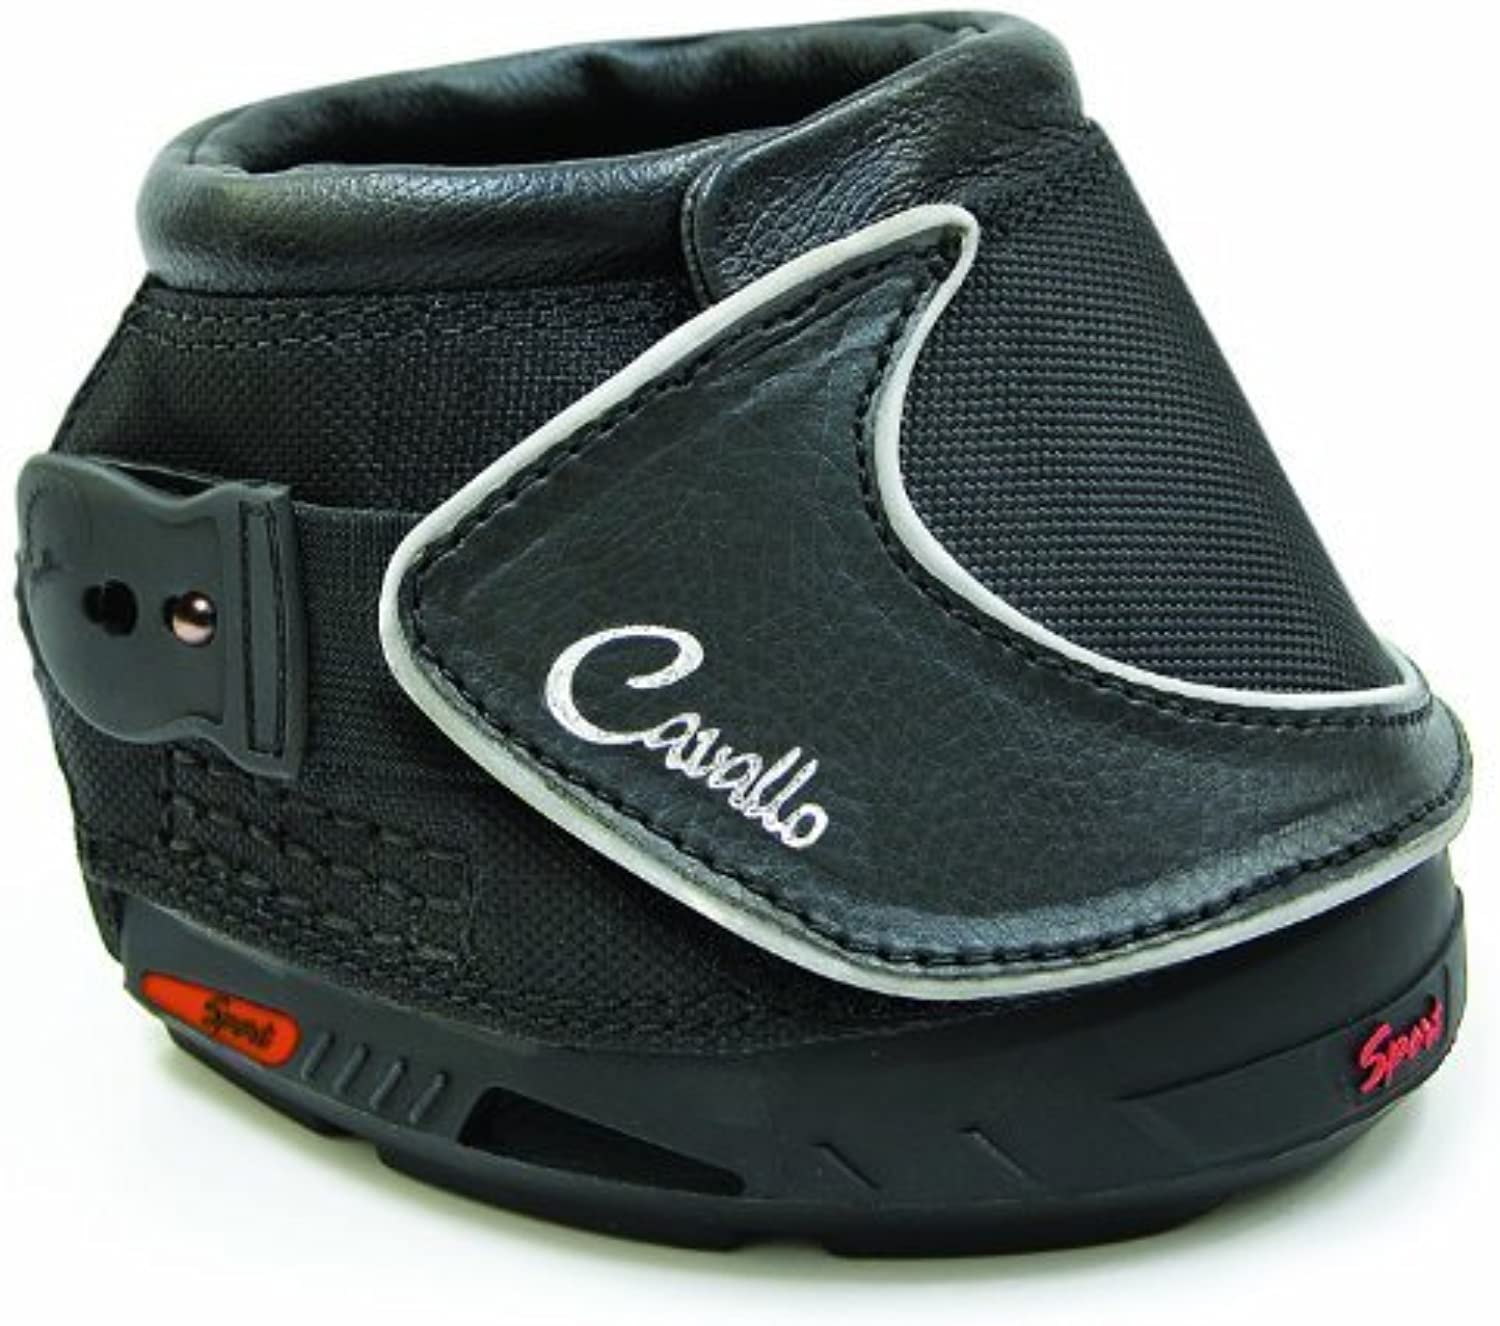 Cavallo Sport Hoof Boot for Horses, Size 4, Black by Cavallo Horse & Rider Inc